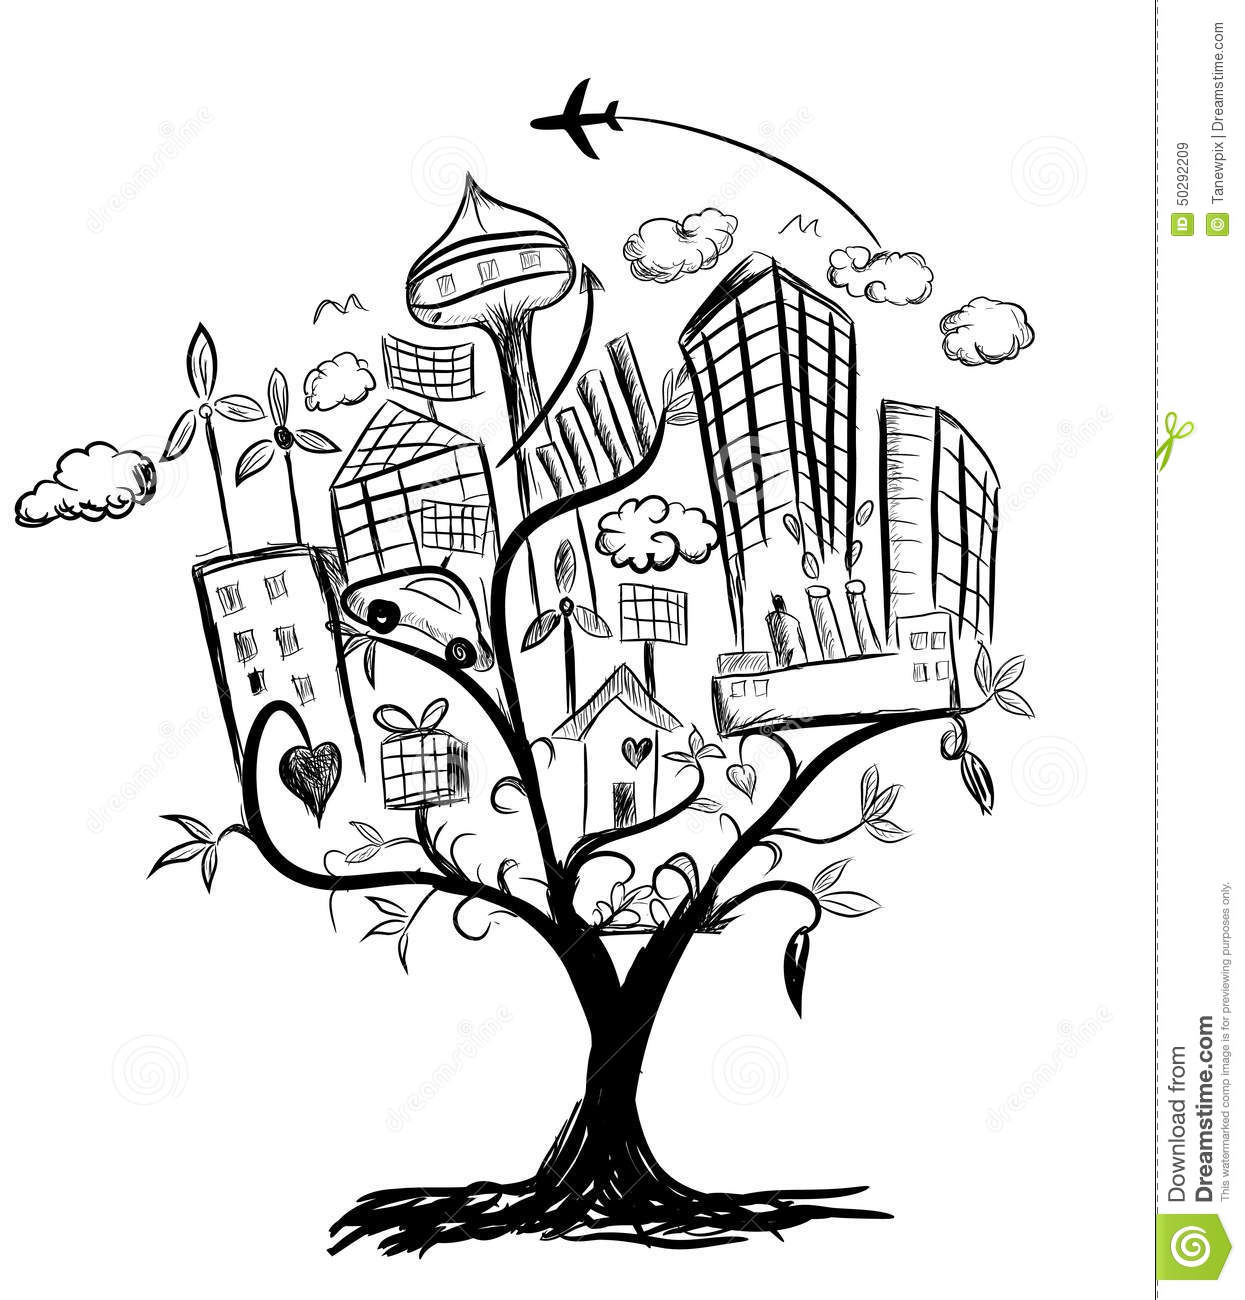 Free Coloring Pages Of Tree With Roots